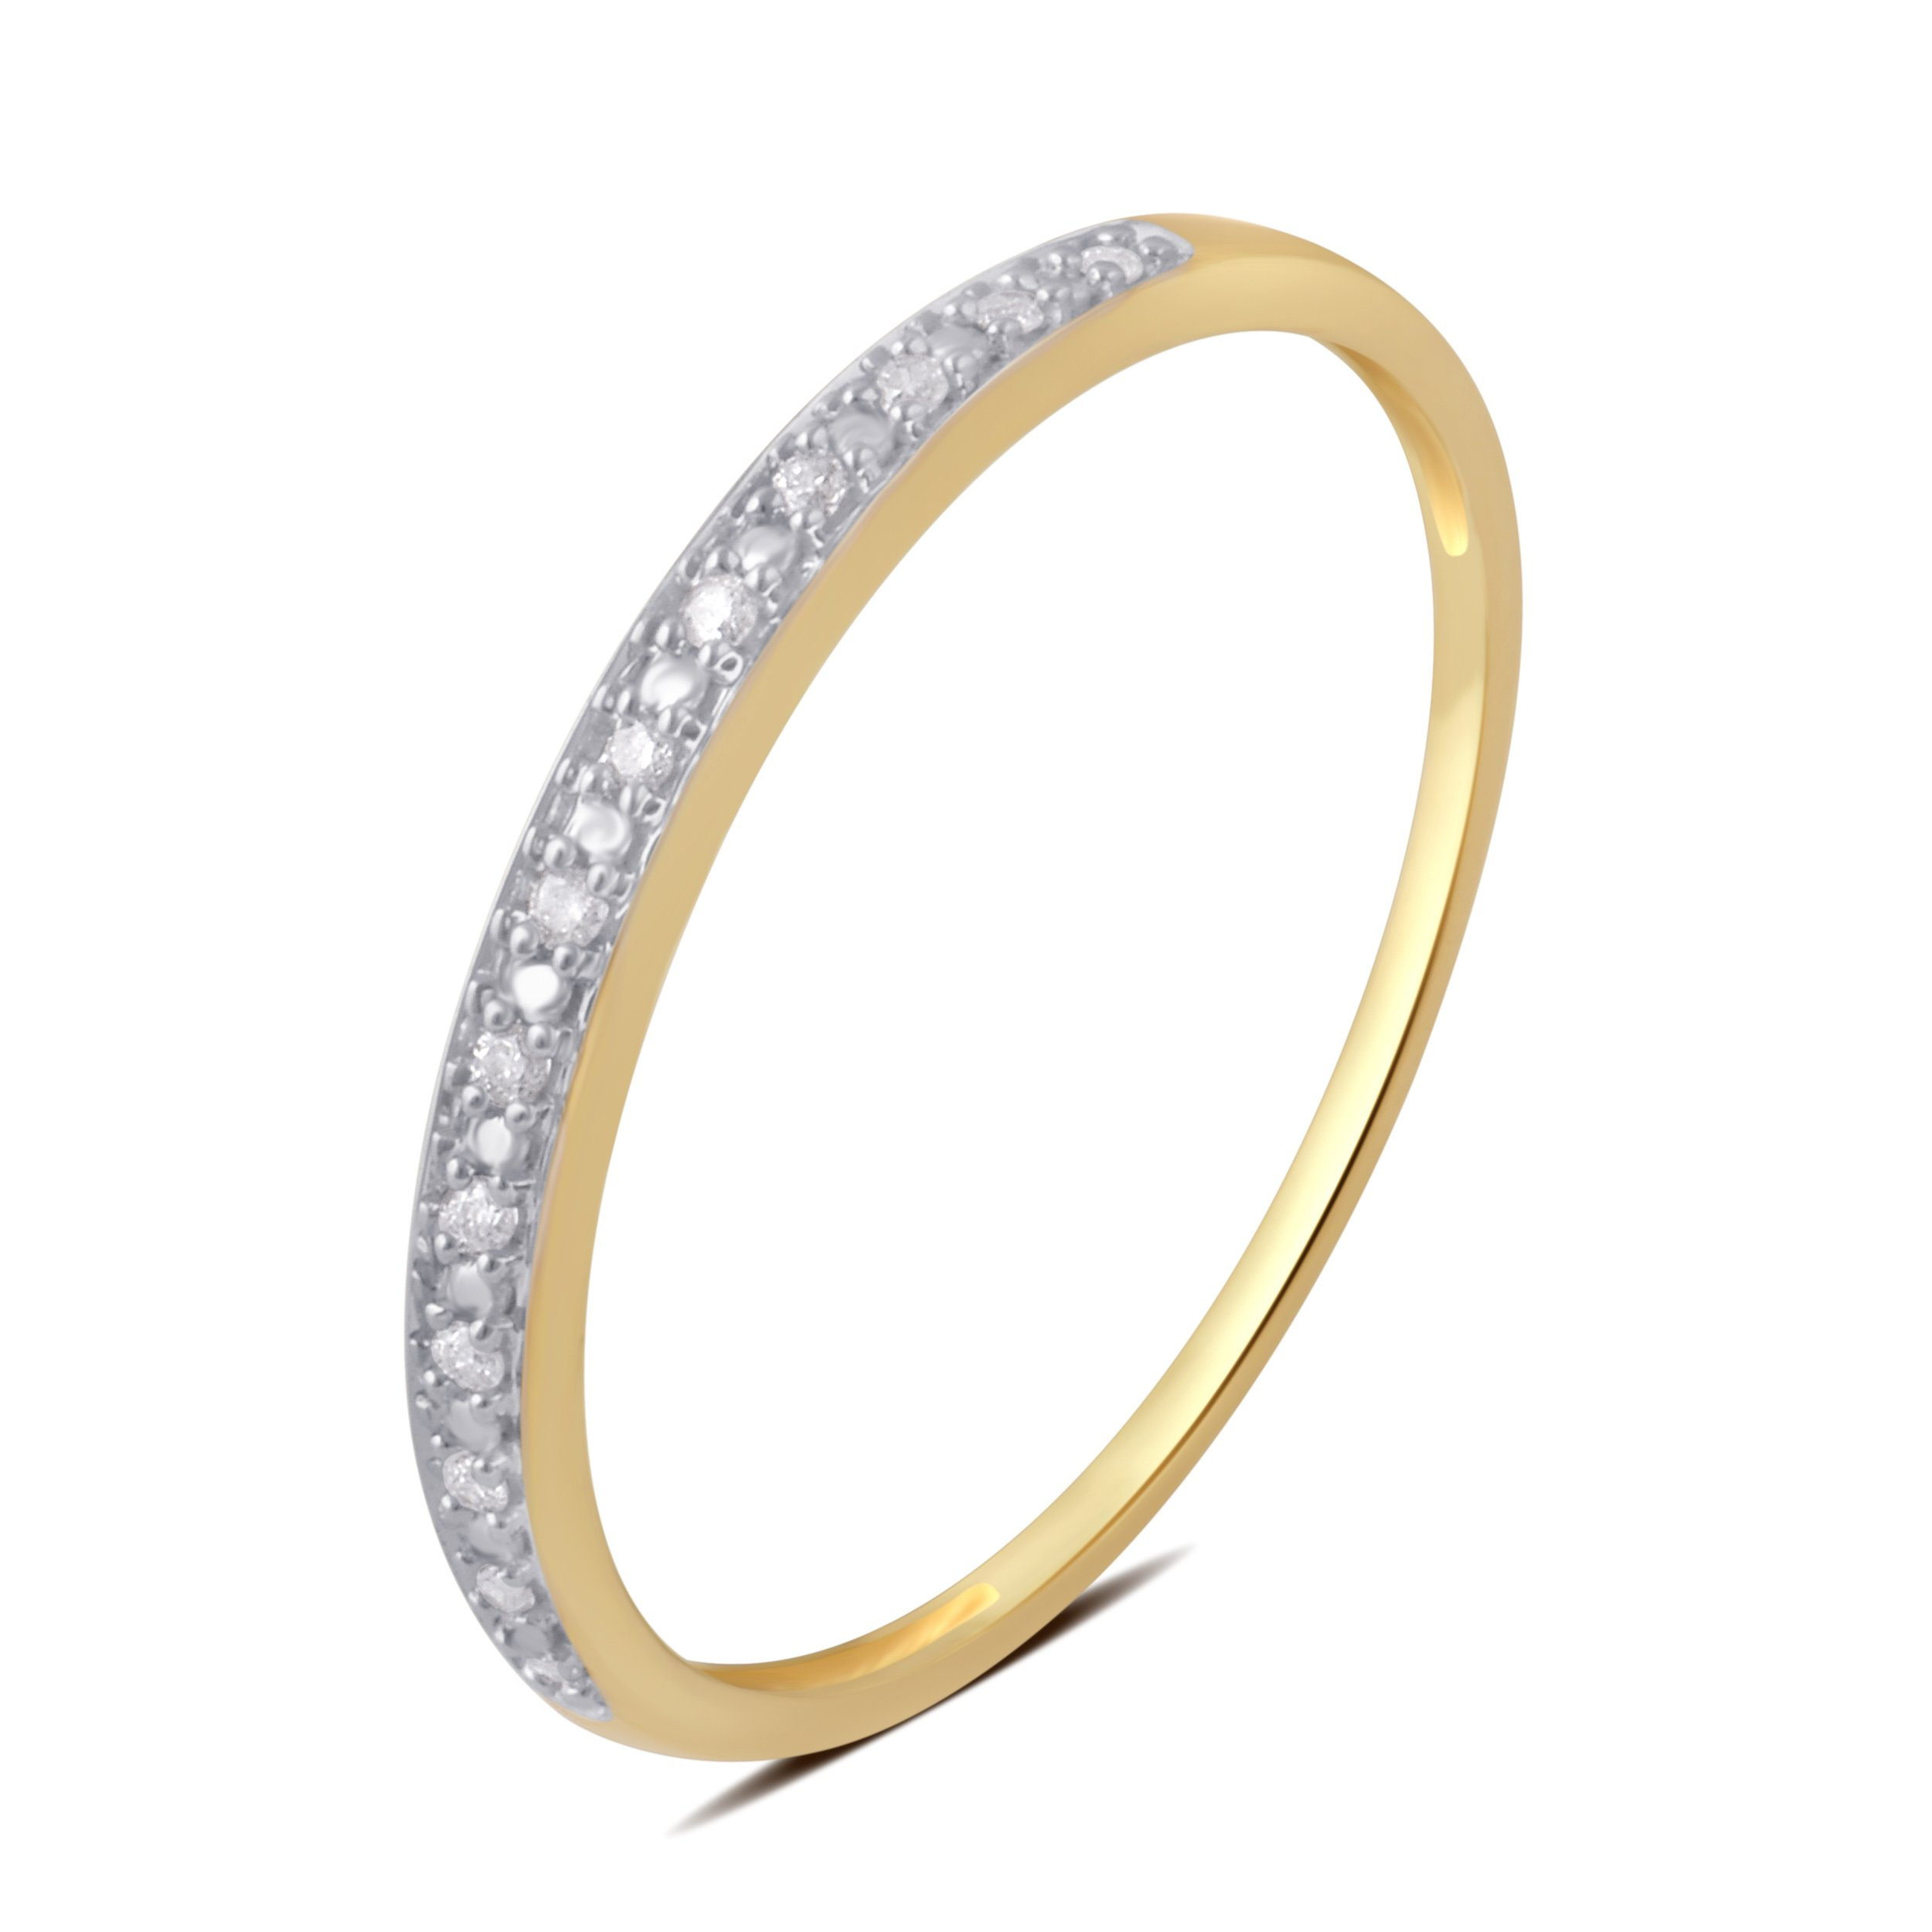 0.05 CTTW Round Diamond Wedding Band in 10K Yellow Gold